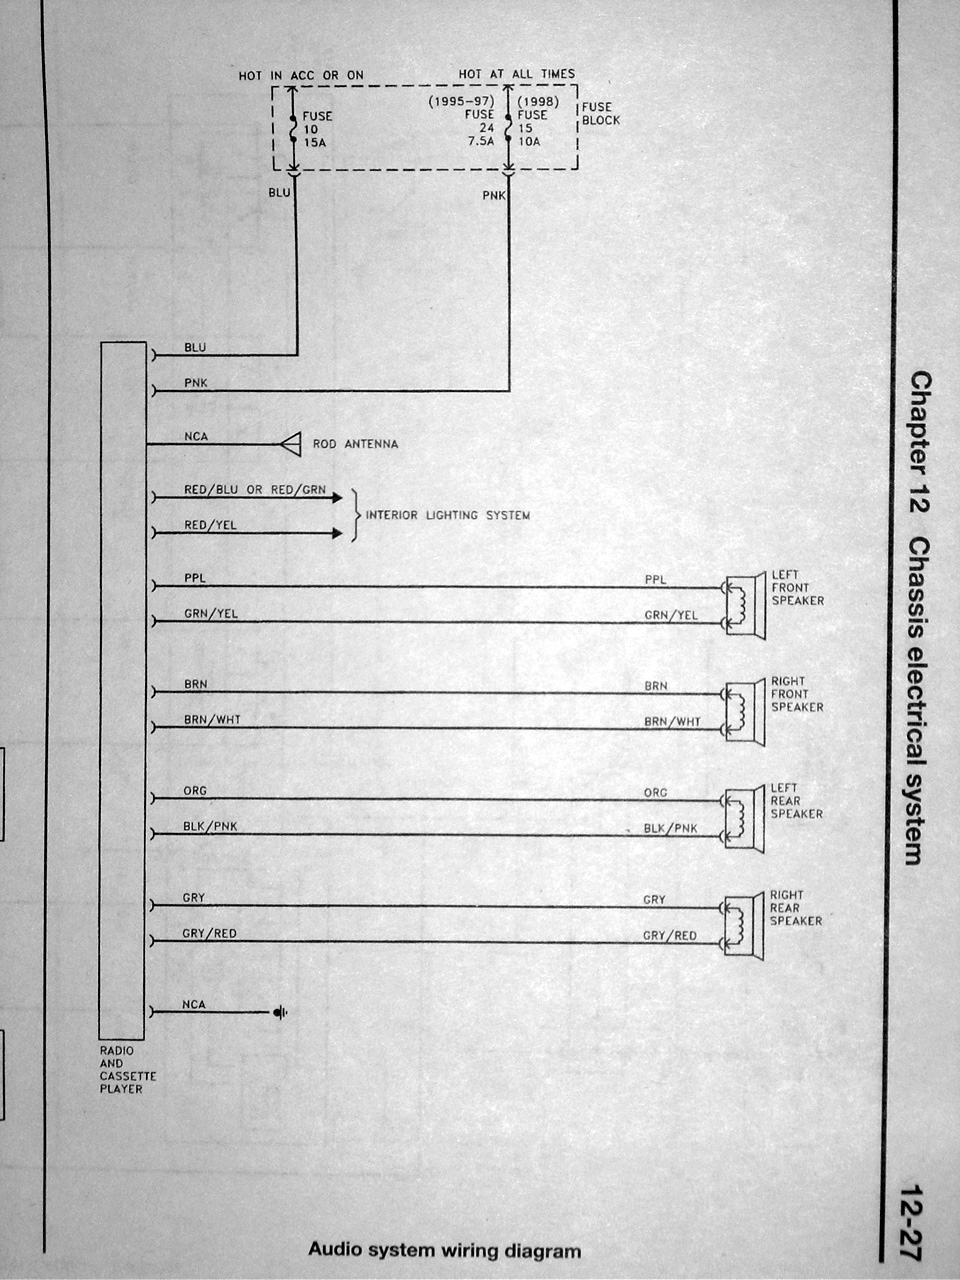 DSC01849 wiring diagram thread *useful info* nissan forum nissan sentra radio wiring diagram at alyssarenee.co